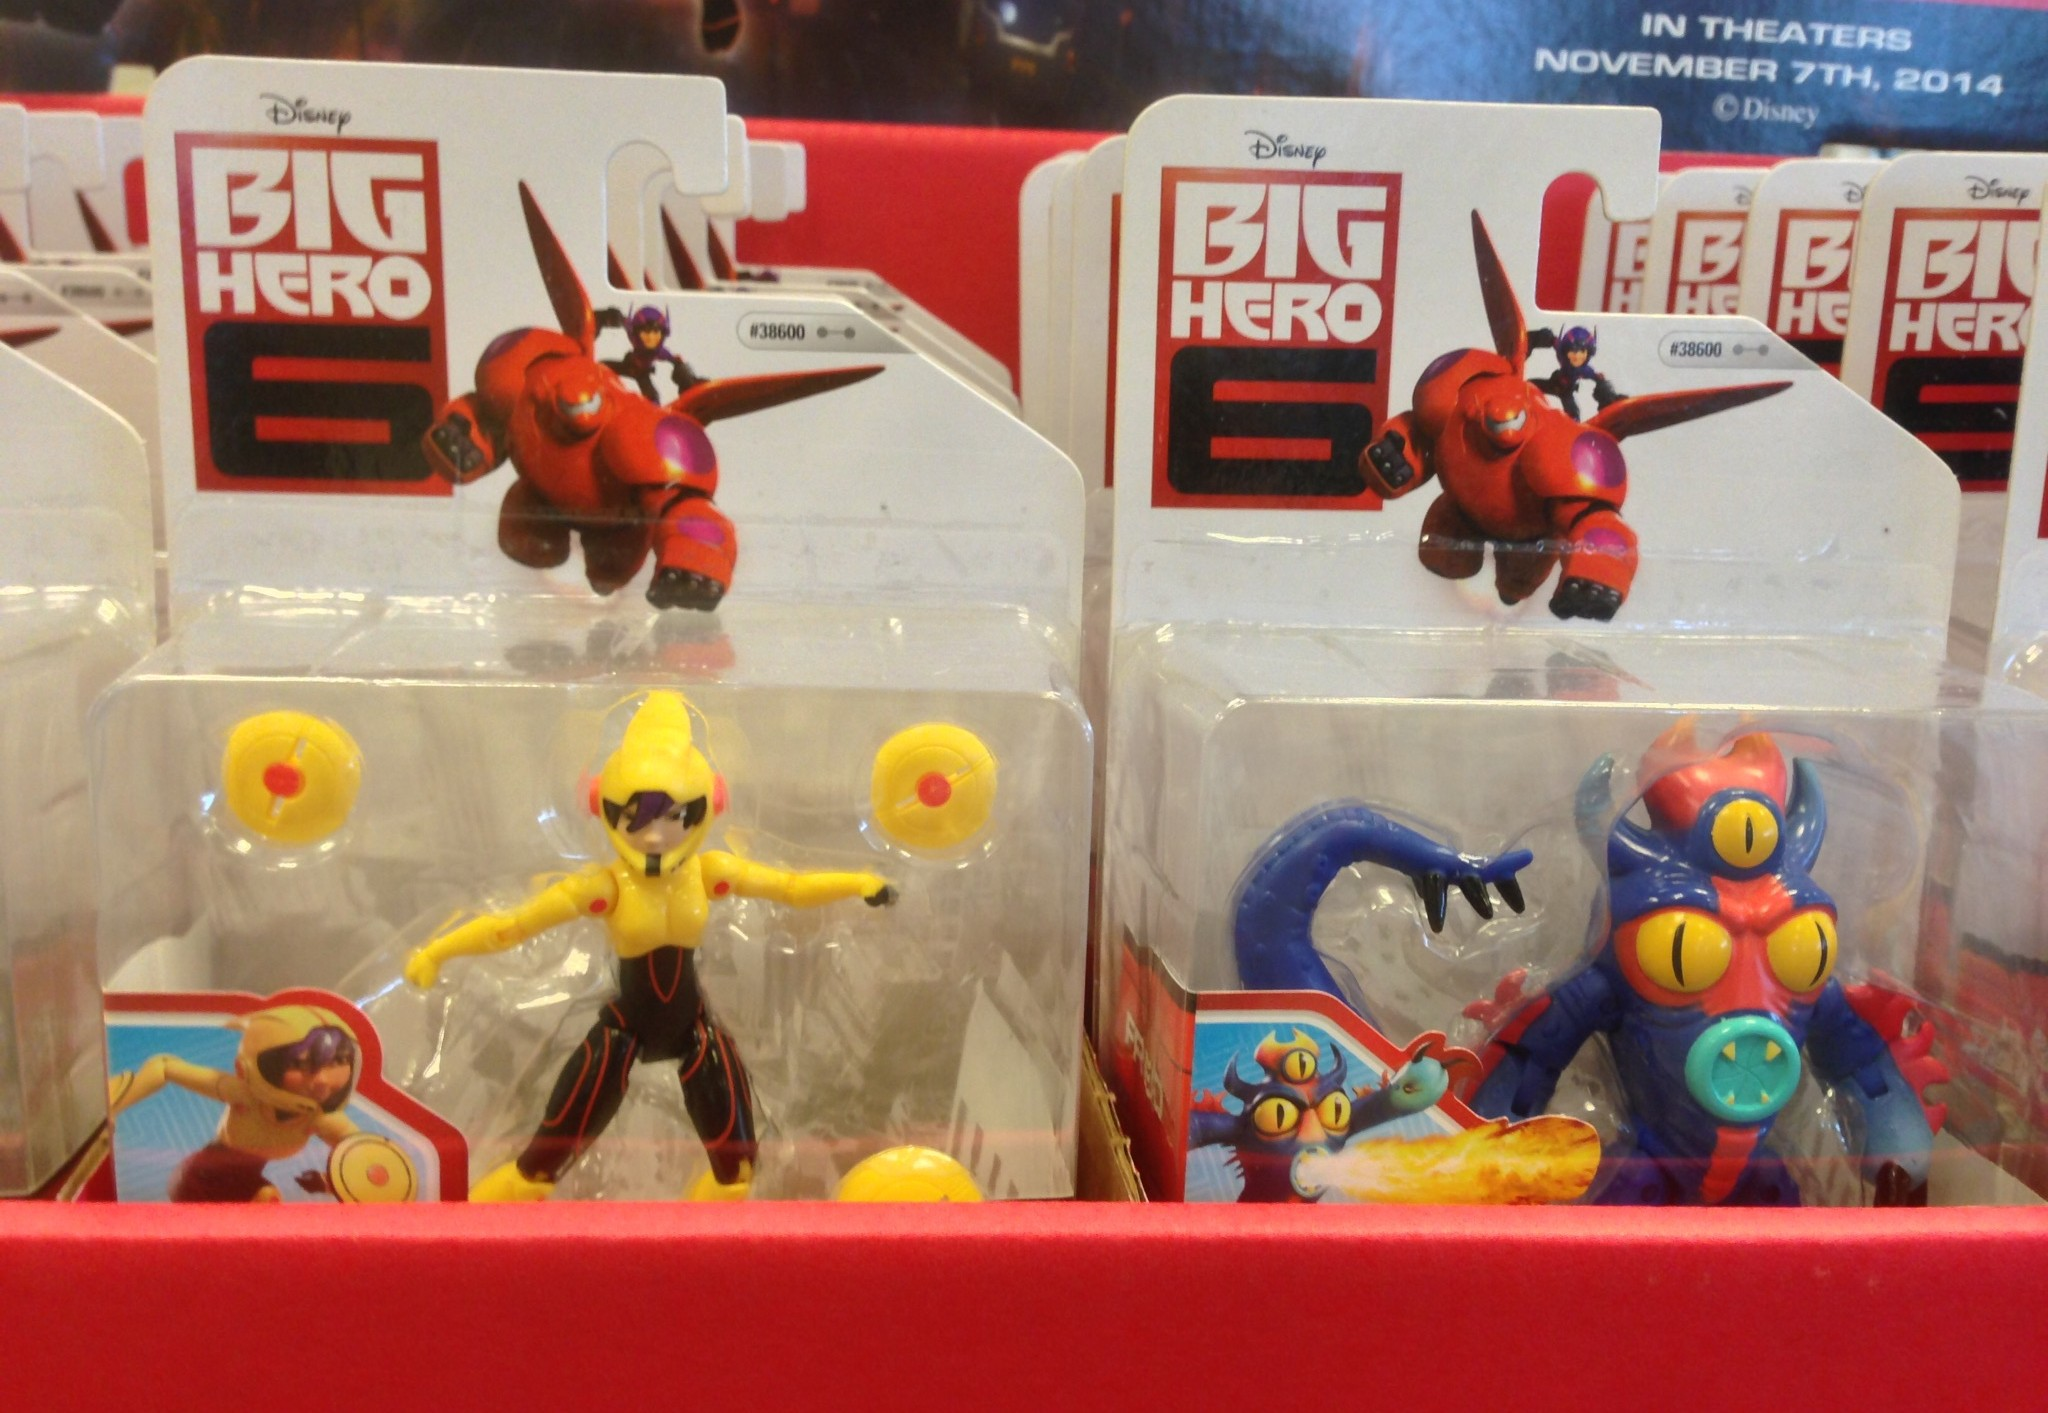 Toys For 6 : Big hero movie figures and toys released photos